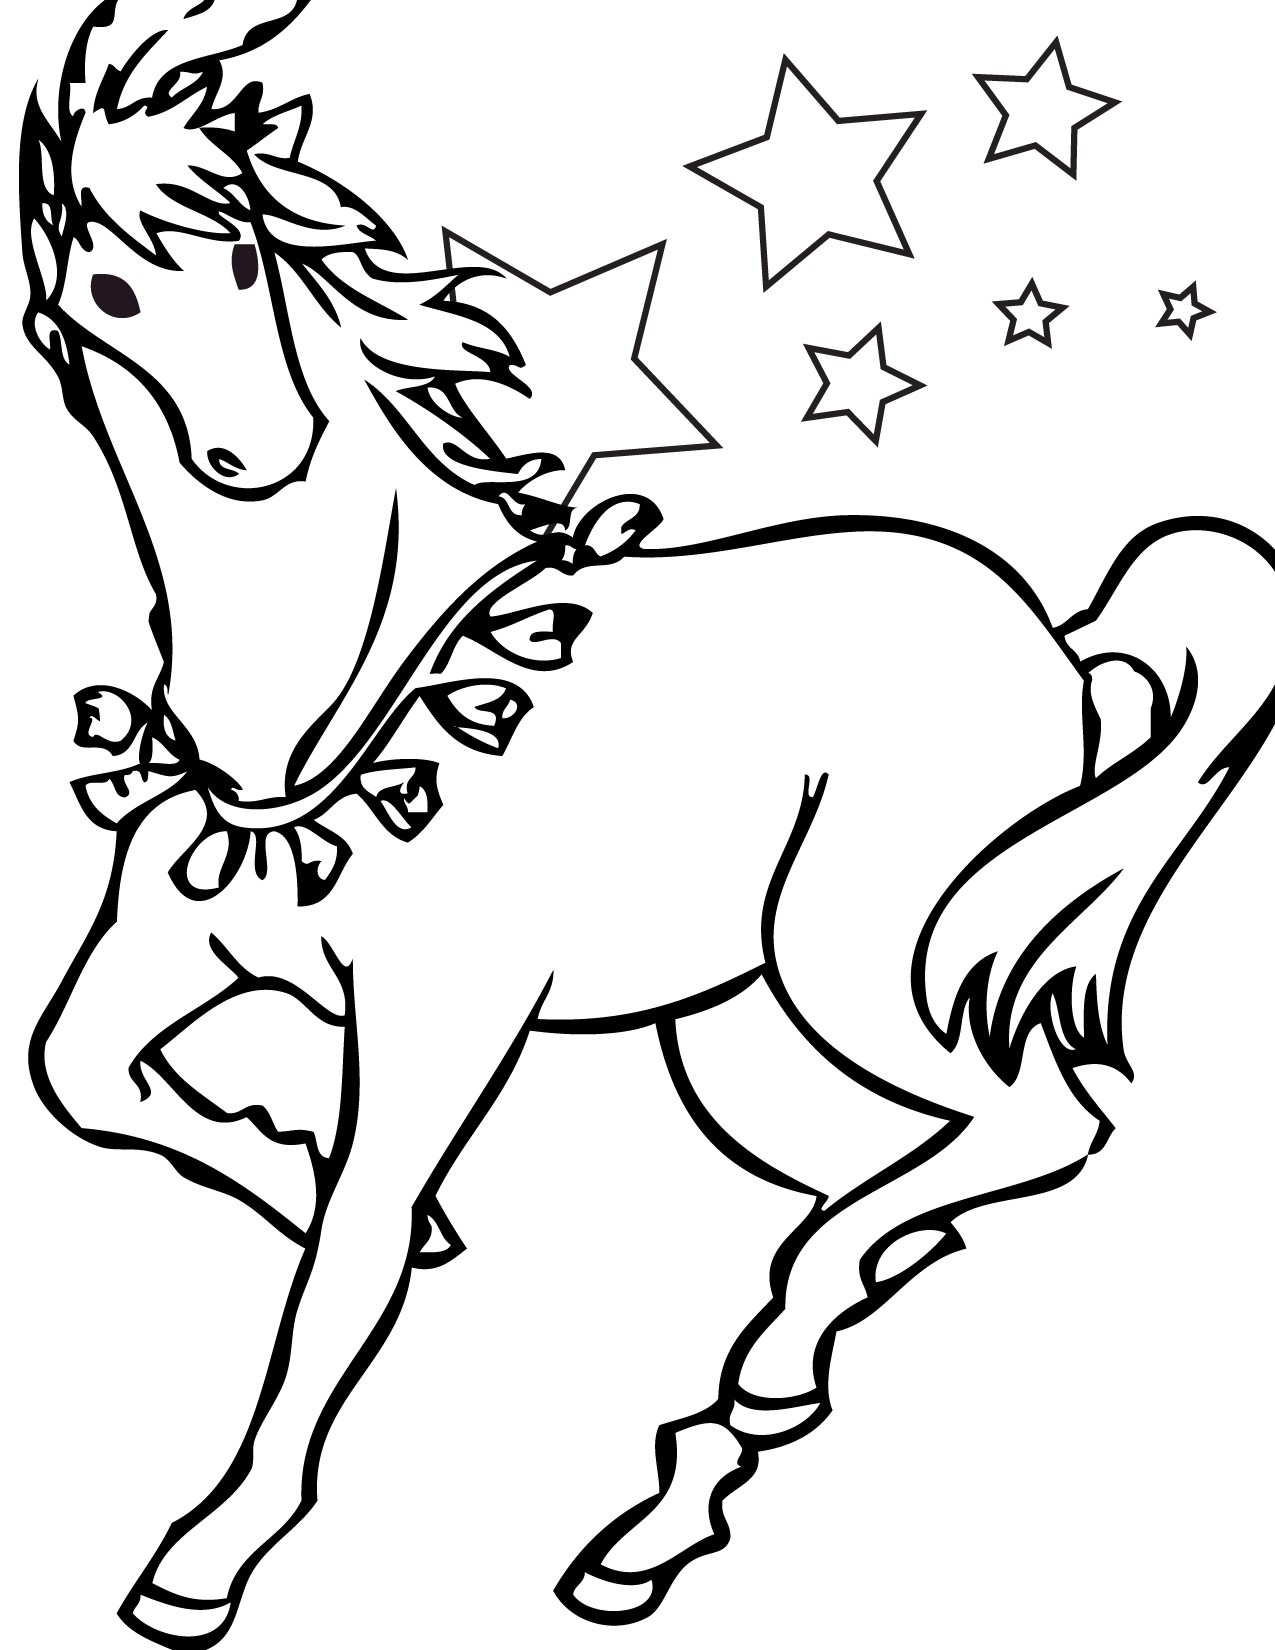 1275x1650 Saola Animal Coloring Pages Best Of Horse Coloring Book Pages